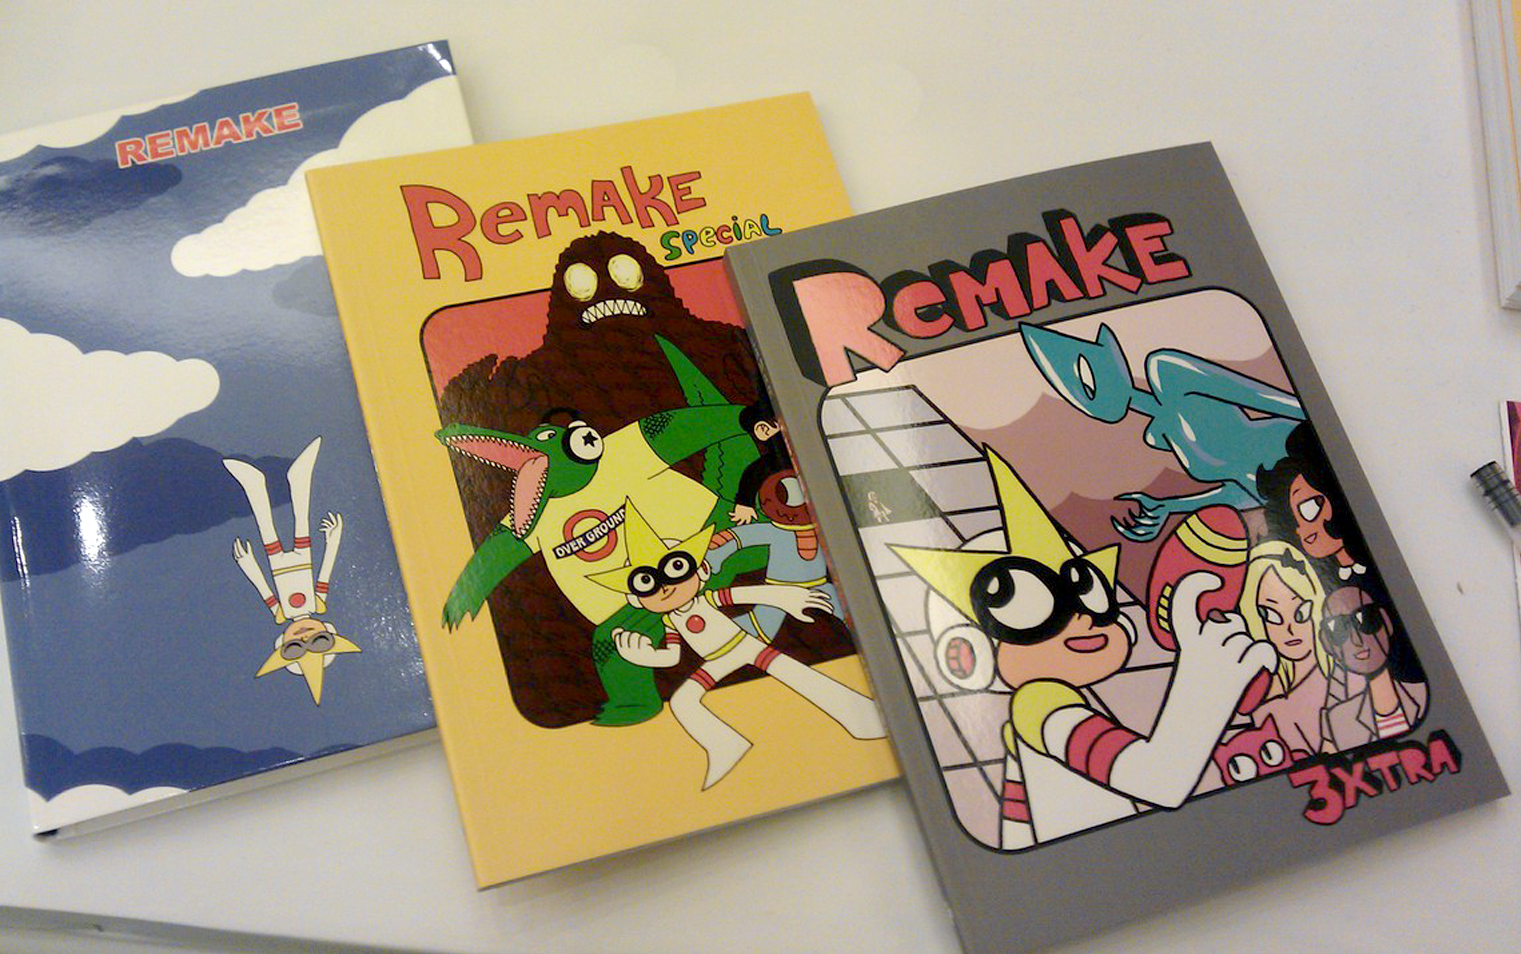 Covers of Remake, comic by Lamar Abrams, storyboard artist for Steven Universe. Credit: AdHouse